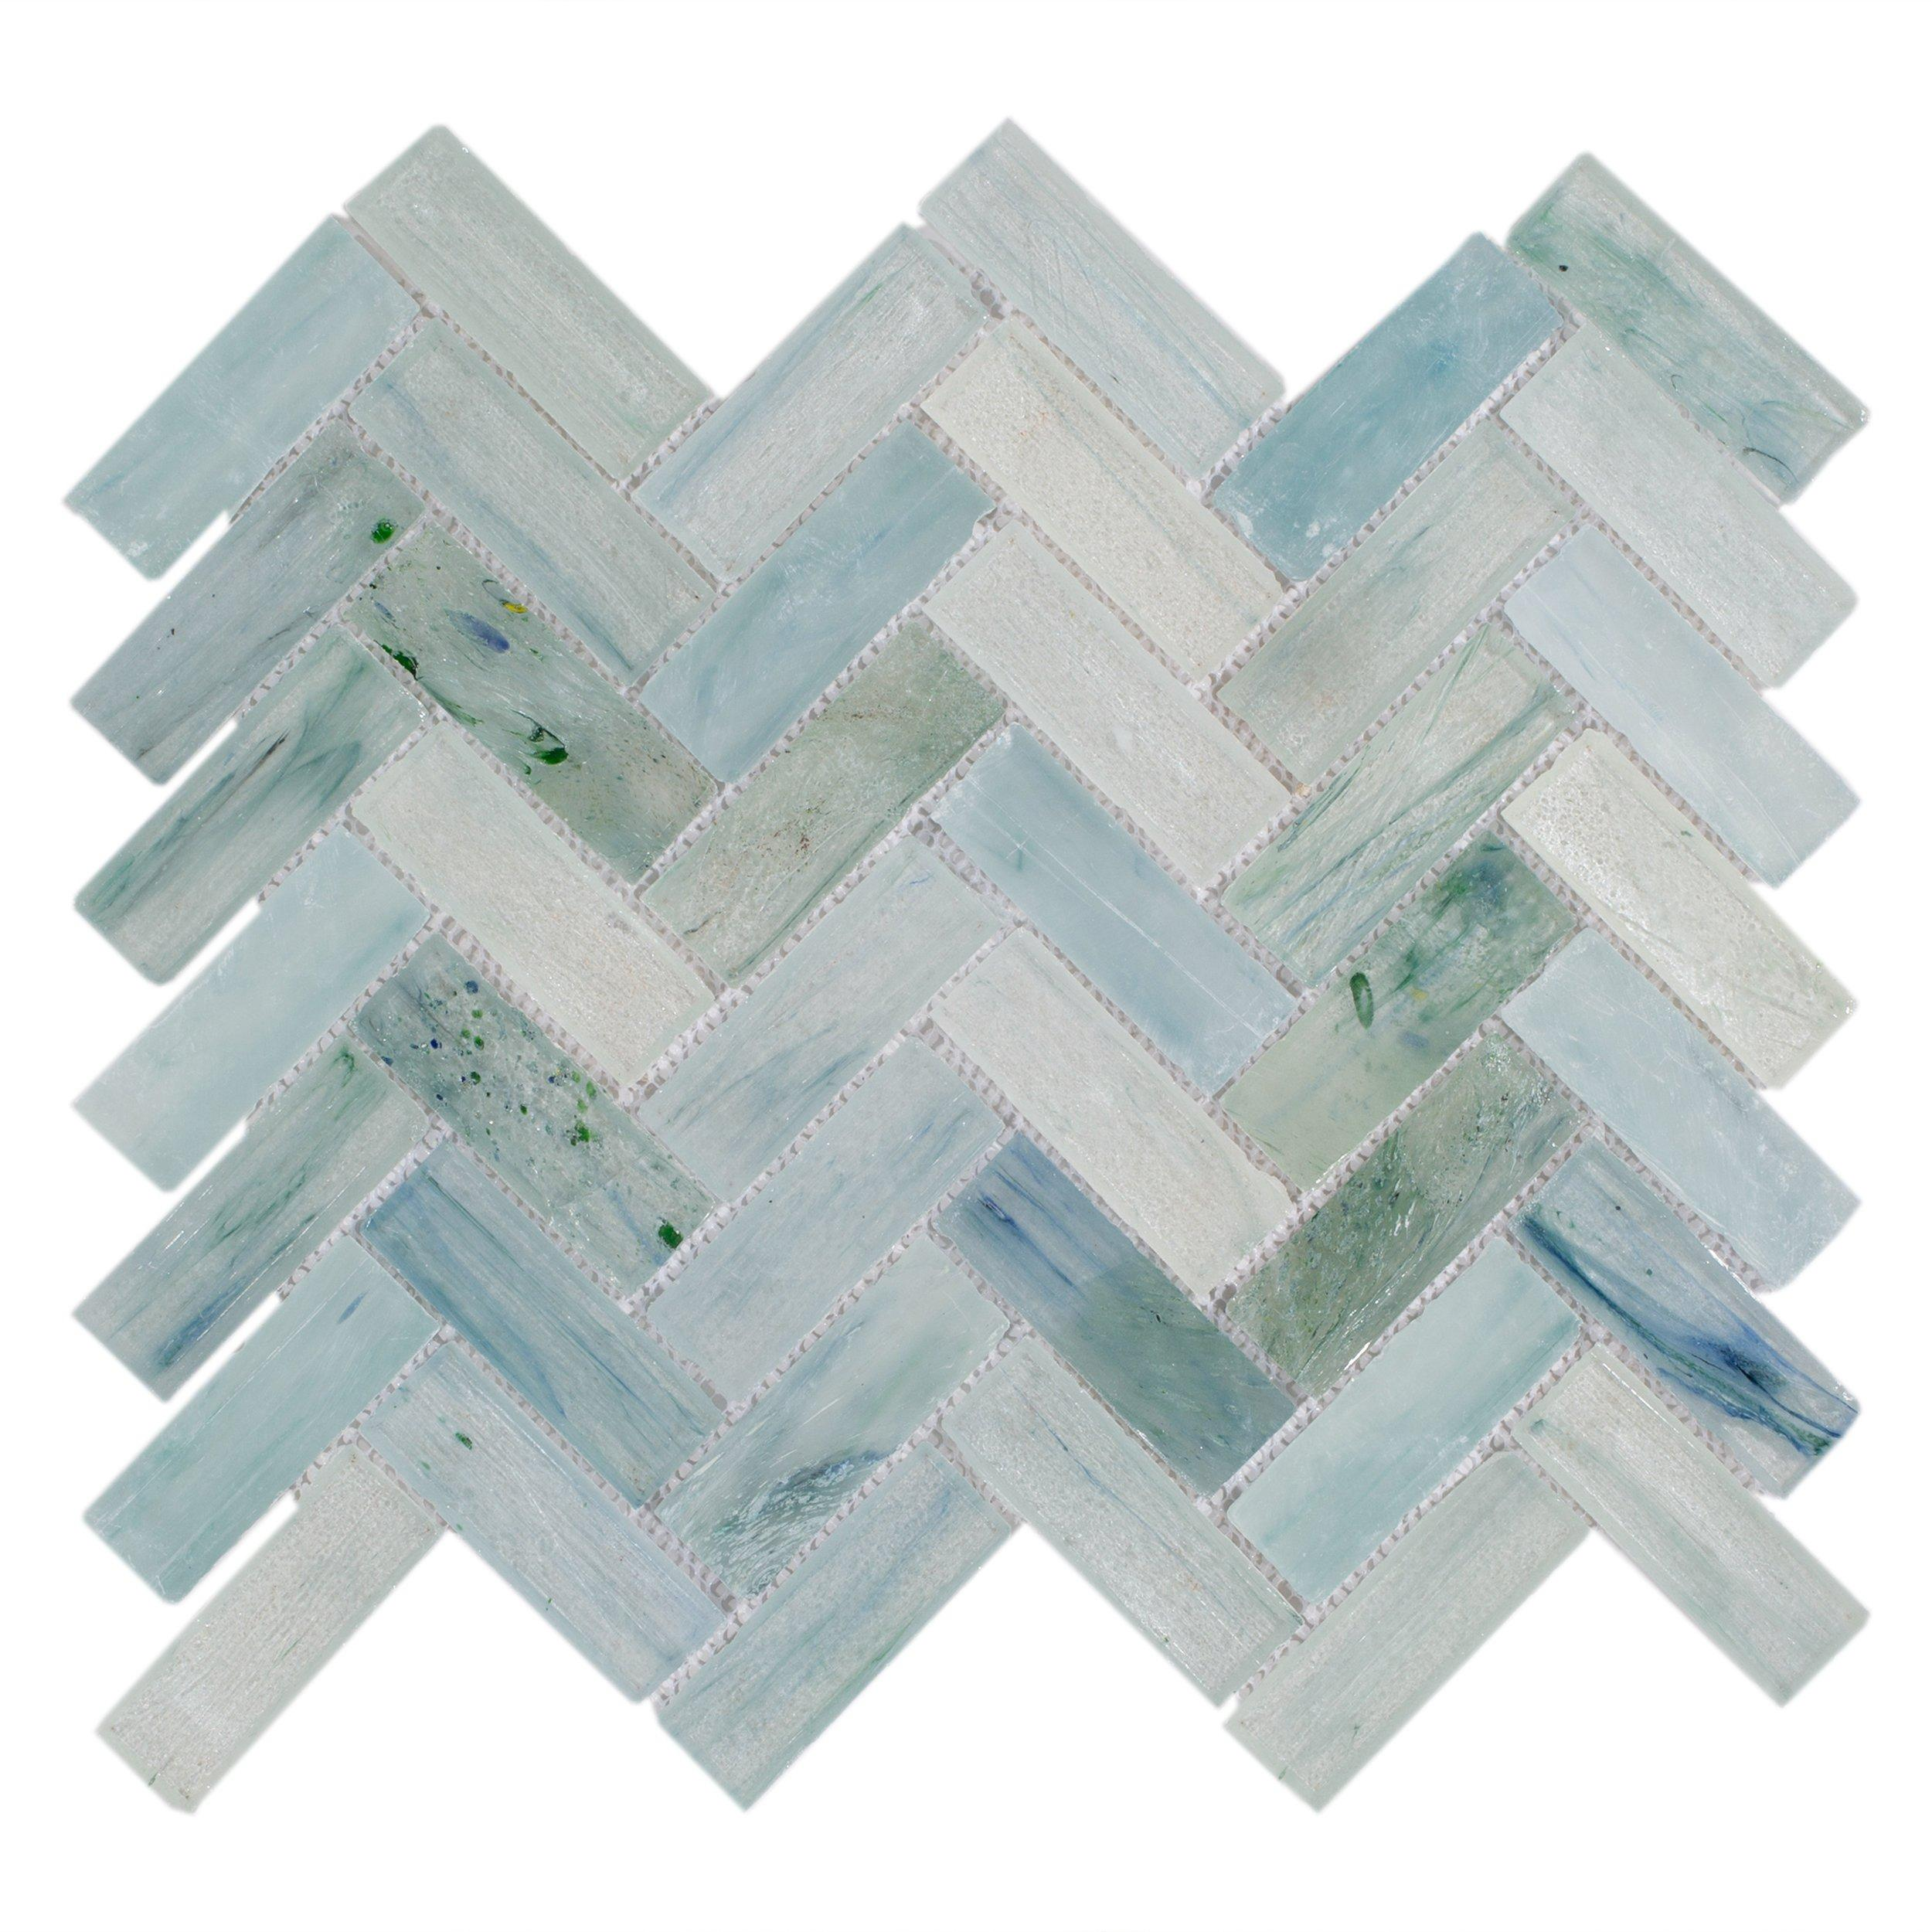 100 floor and decor coupon flooring and carpet at brian floor and decor coupon decorative glass tile floor decor